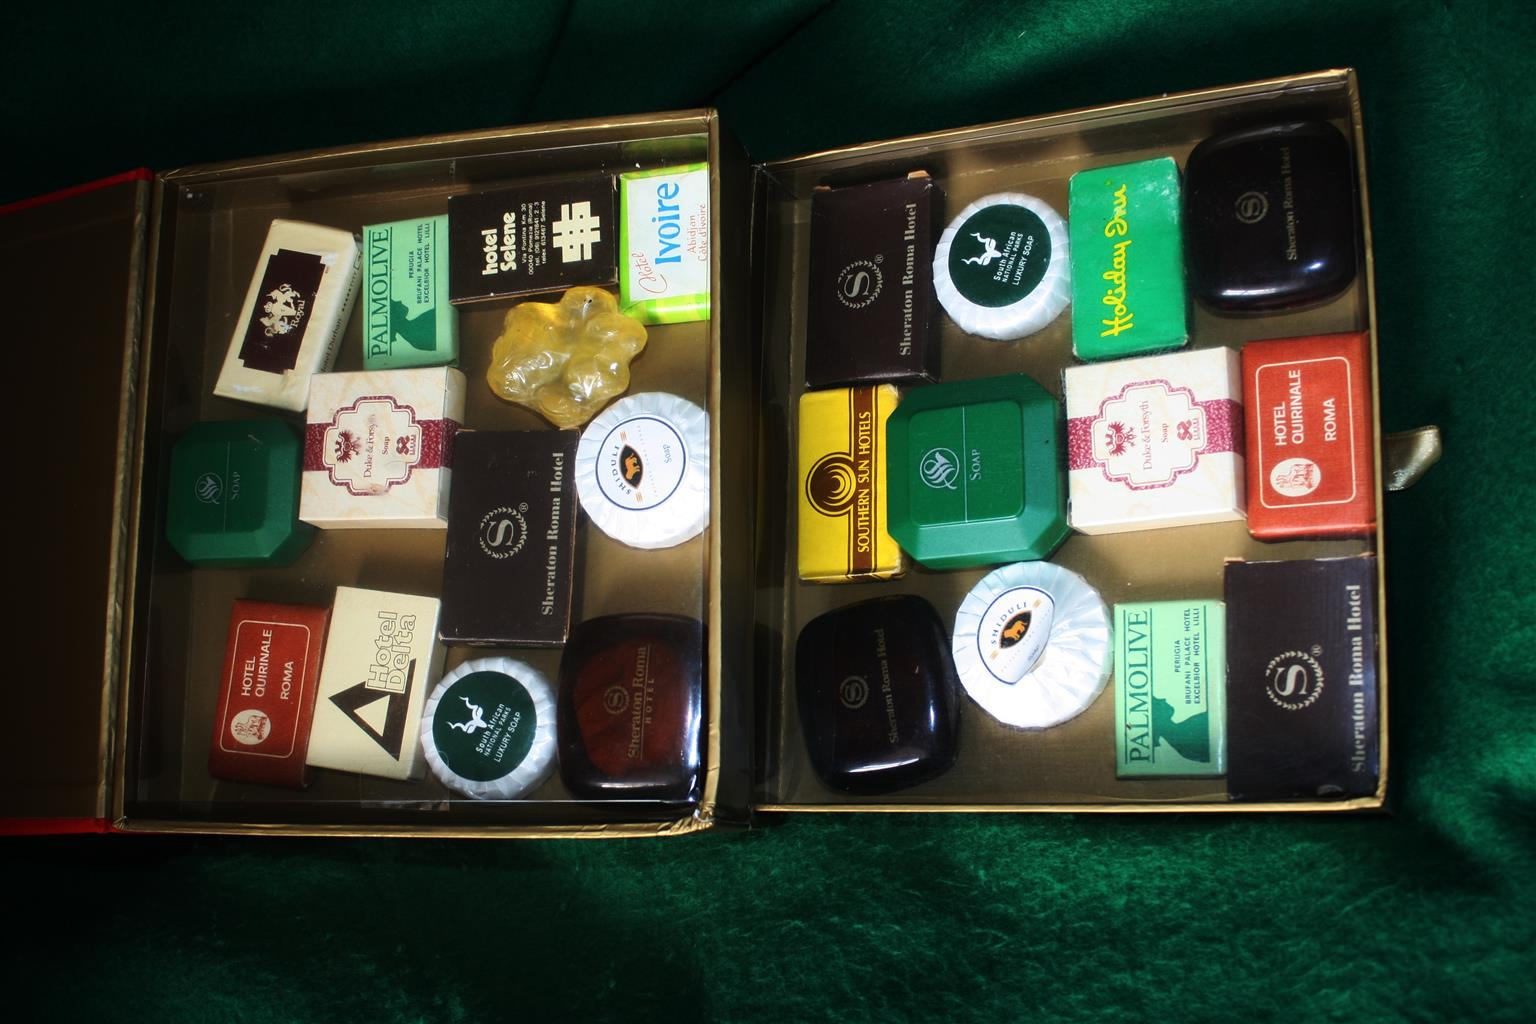 International Hotel and Airlines Soaps Miniatures